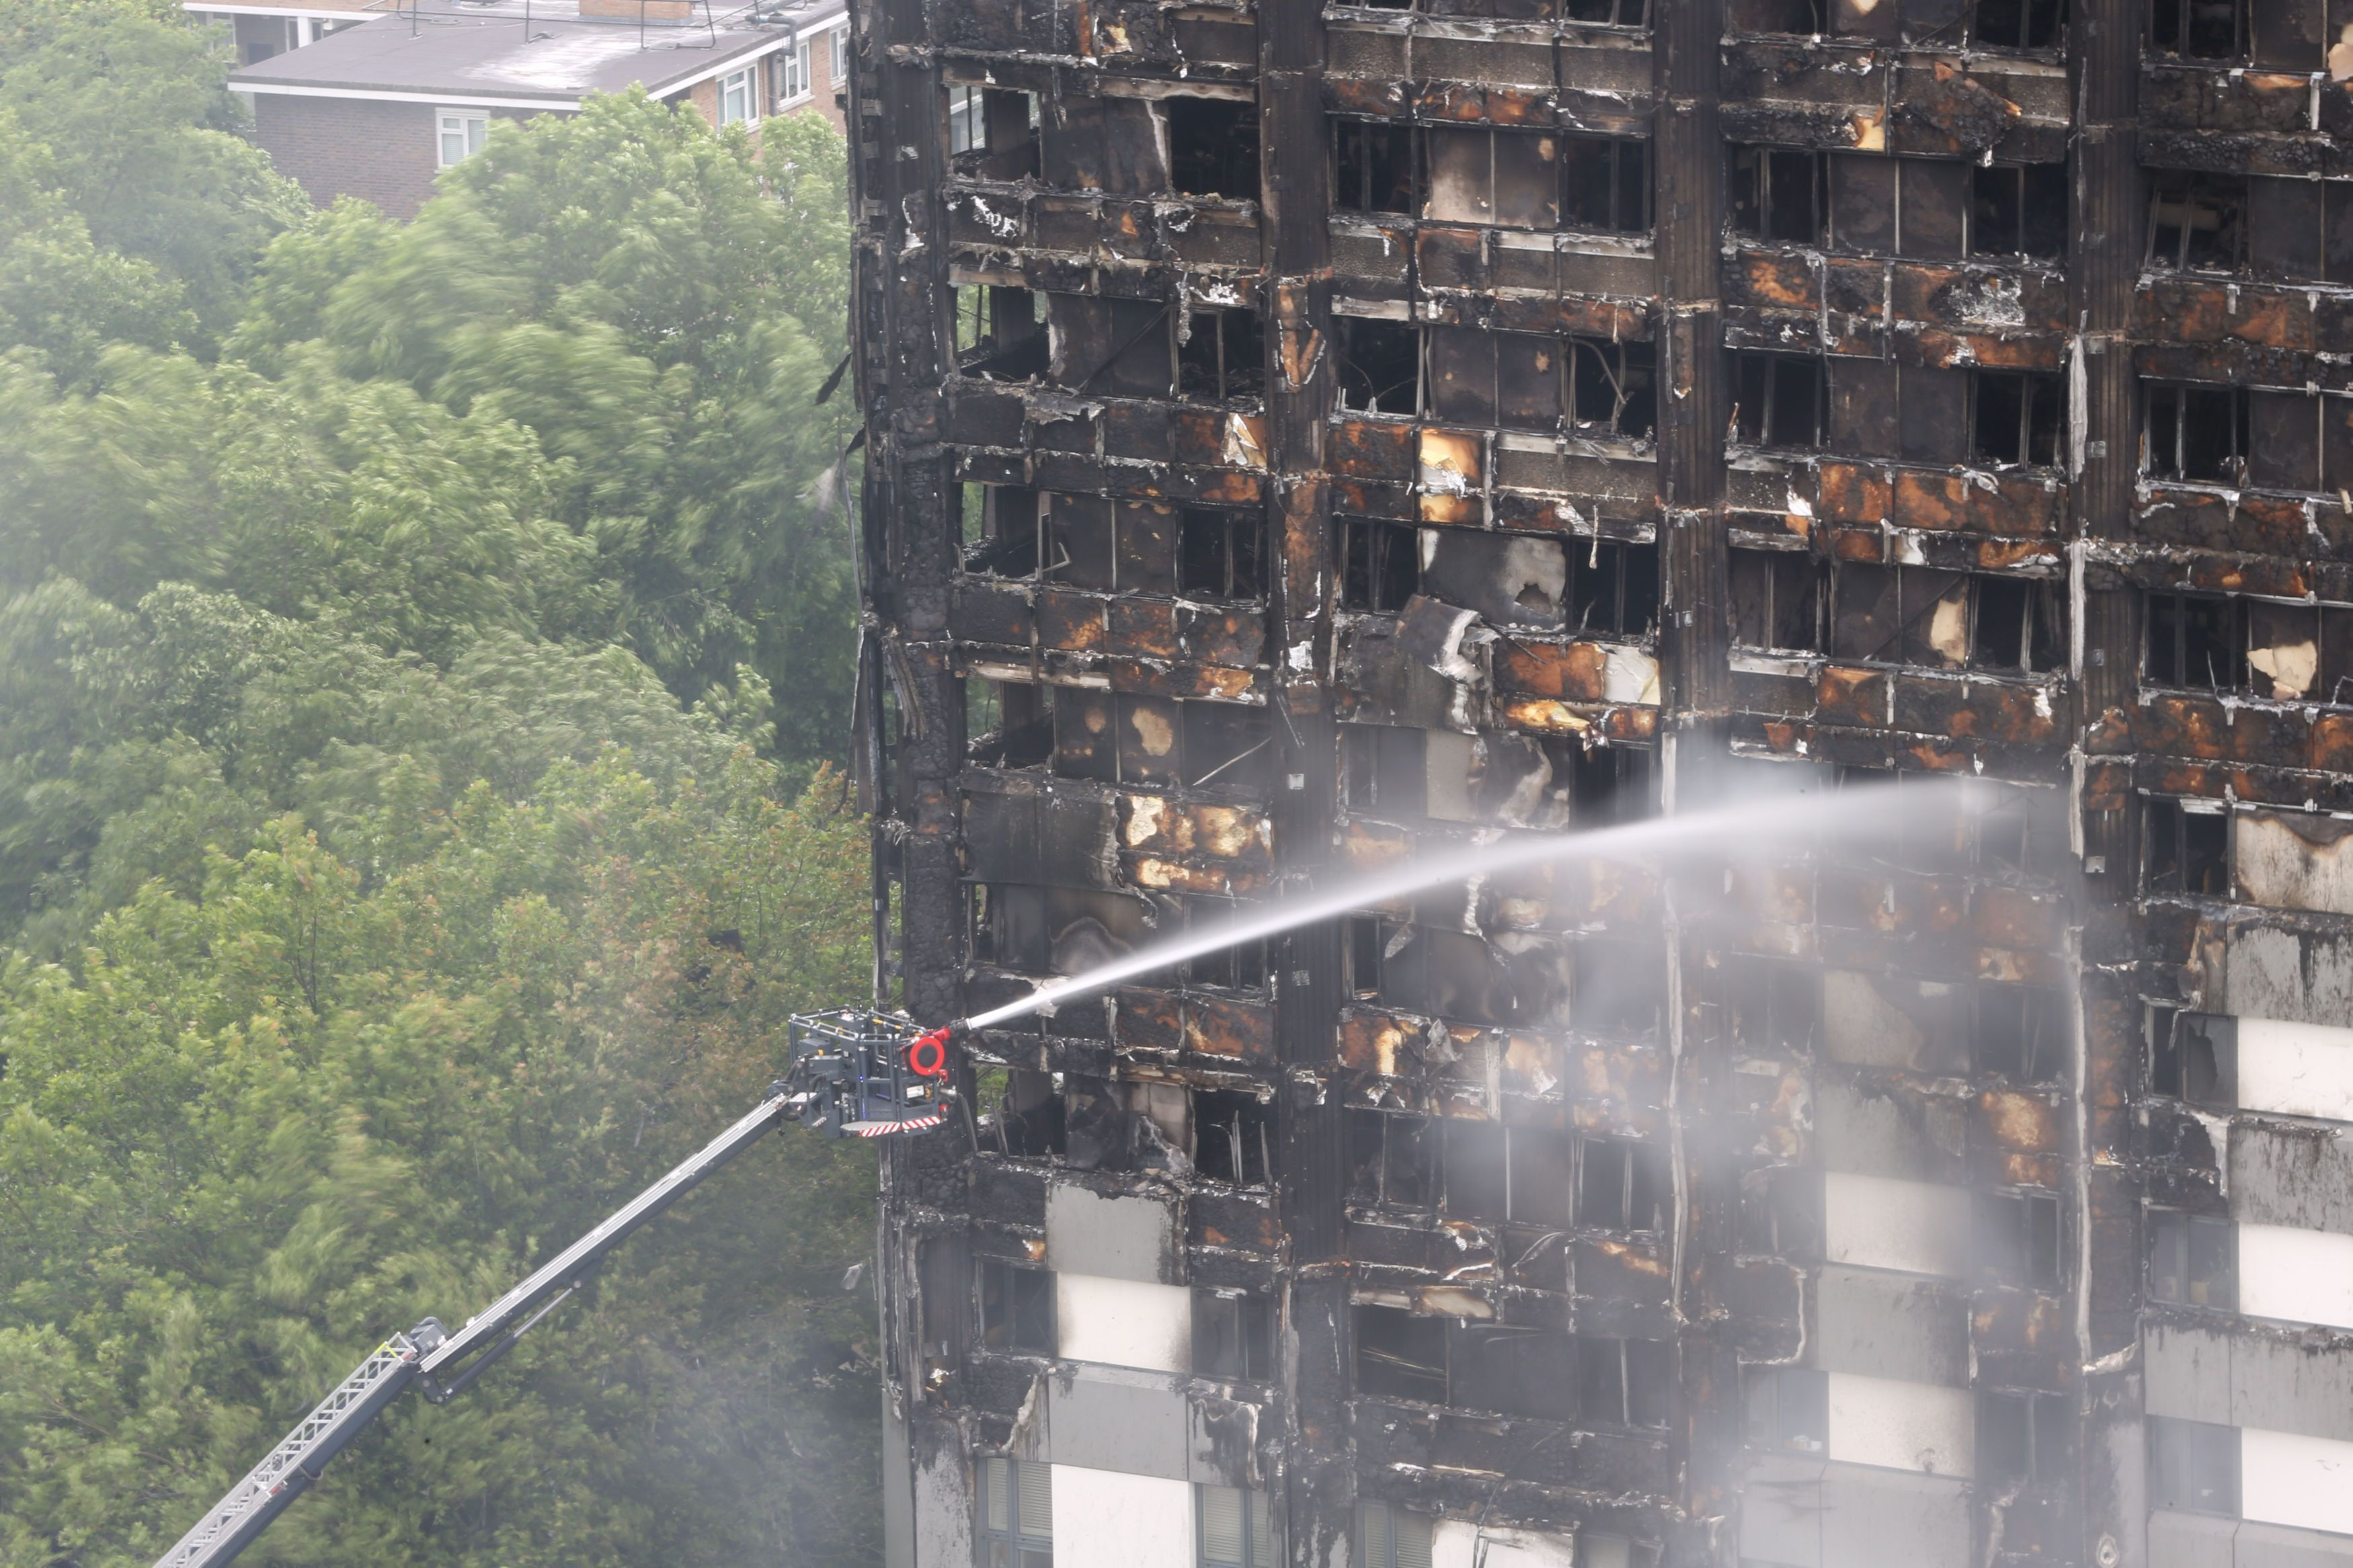 Grenfell Blaze Was Like 'Armageddon', Firefighters